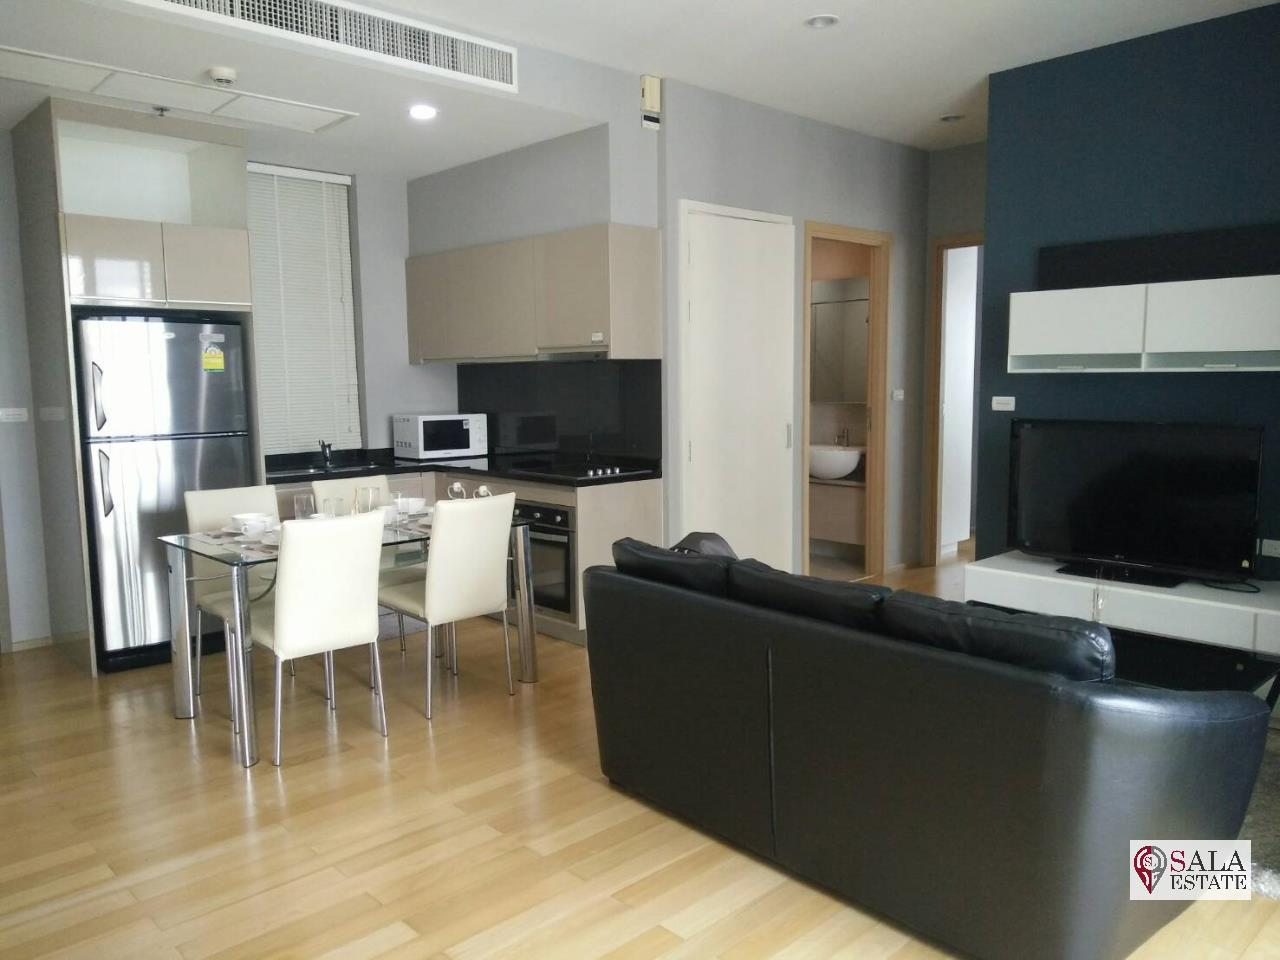 SALA ESTATE Agency's ( SELL WITH TENANT) 39 BY SANSIRI - BTS PROMPONG, 2 BEDROOMS 2 BATHROOMS, FULLY FURNISHED 8